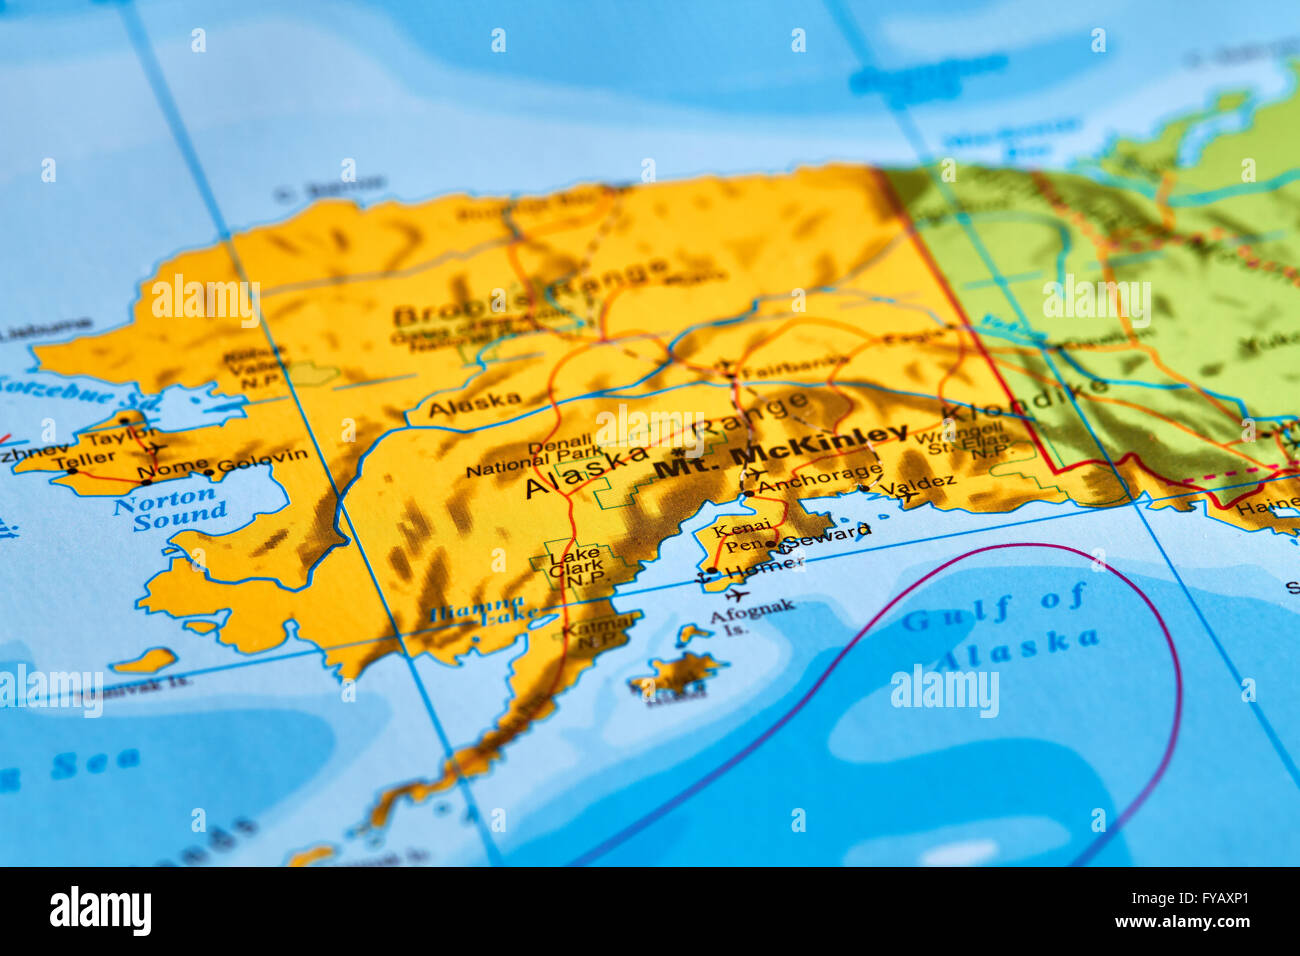 Map of north america and alaska stock photos map of north america alaska state in usa on the world map stock image gumiabroncs Image collections